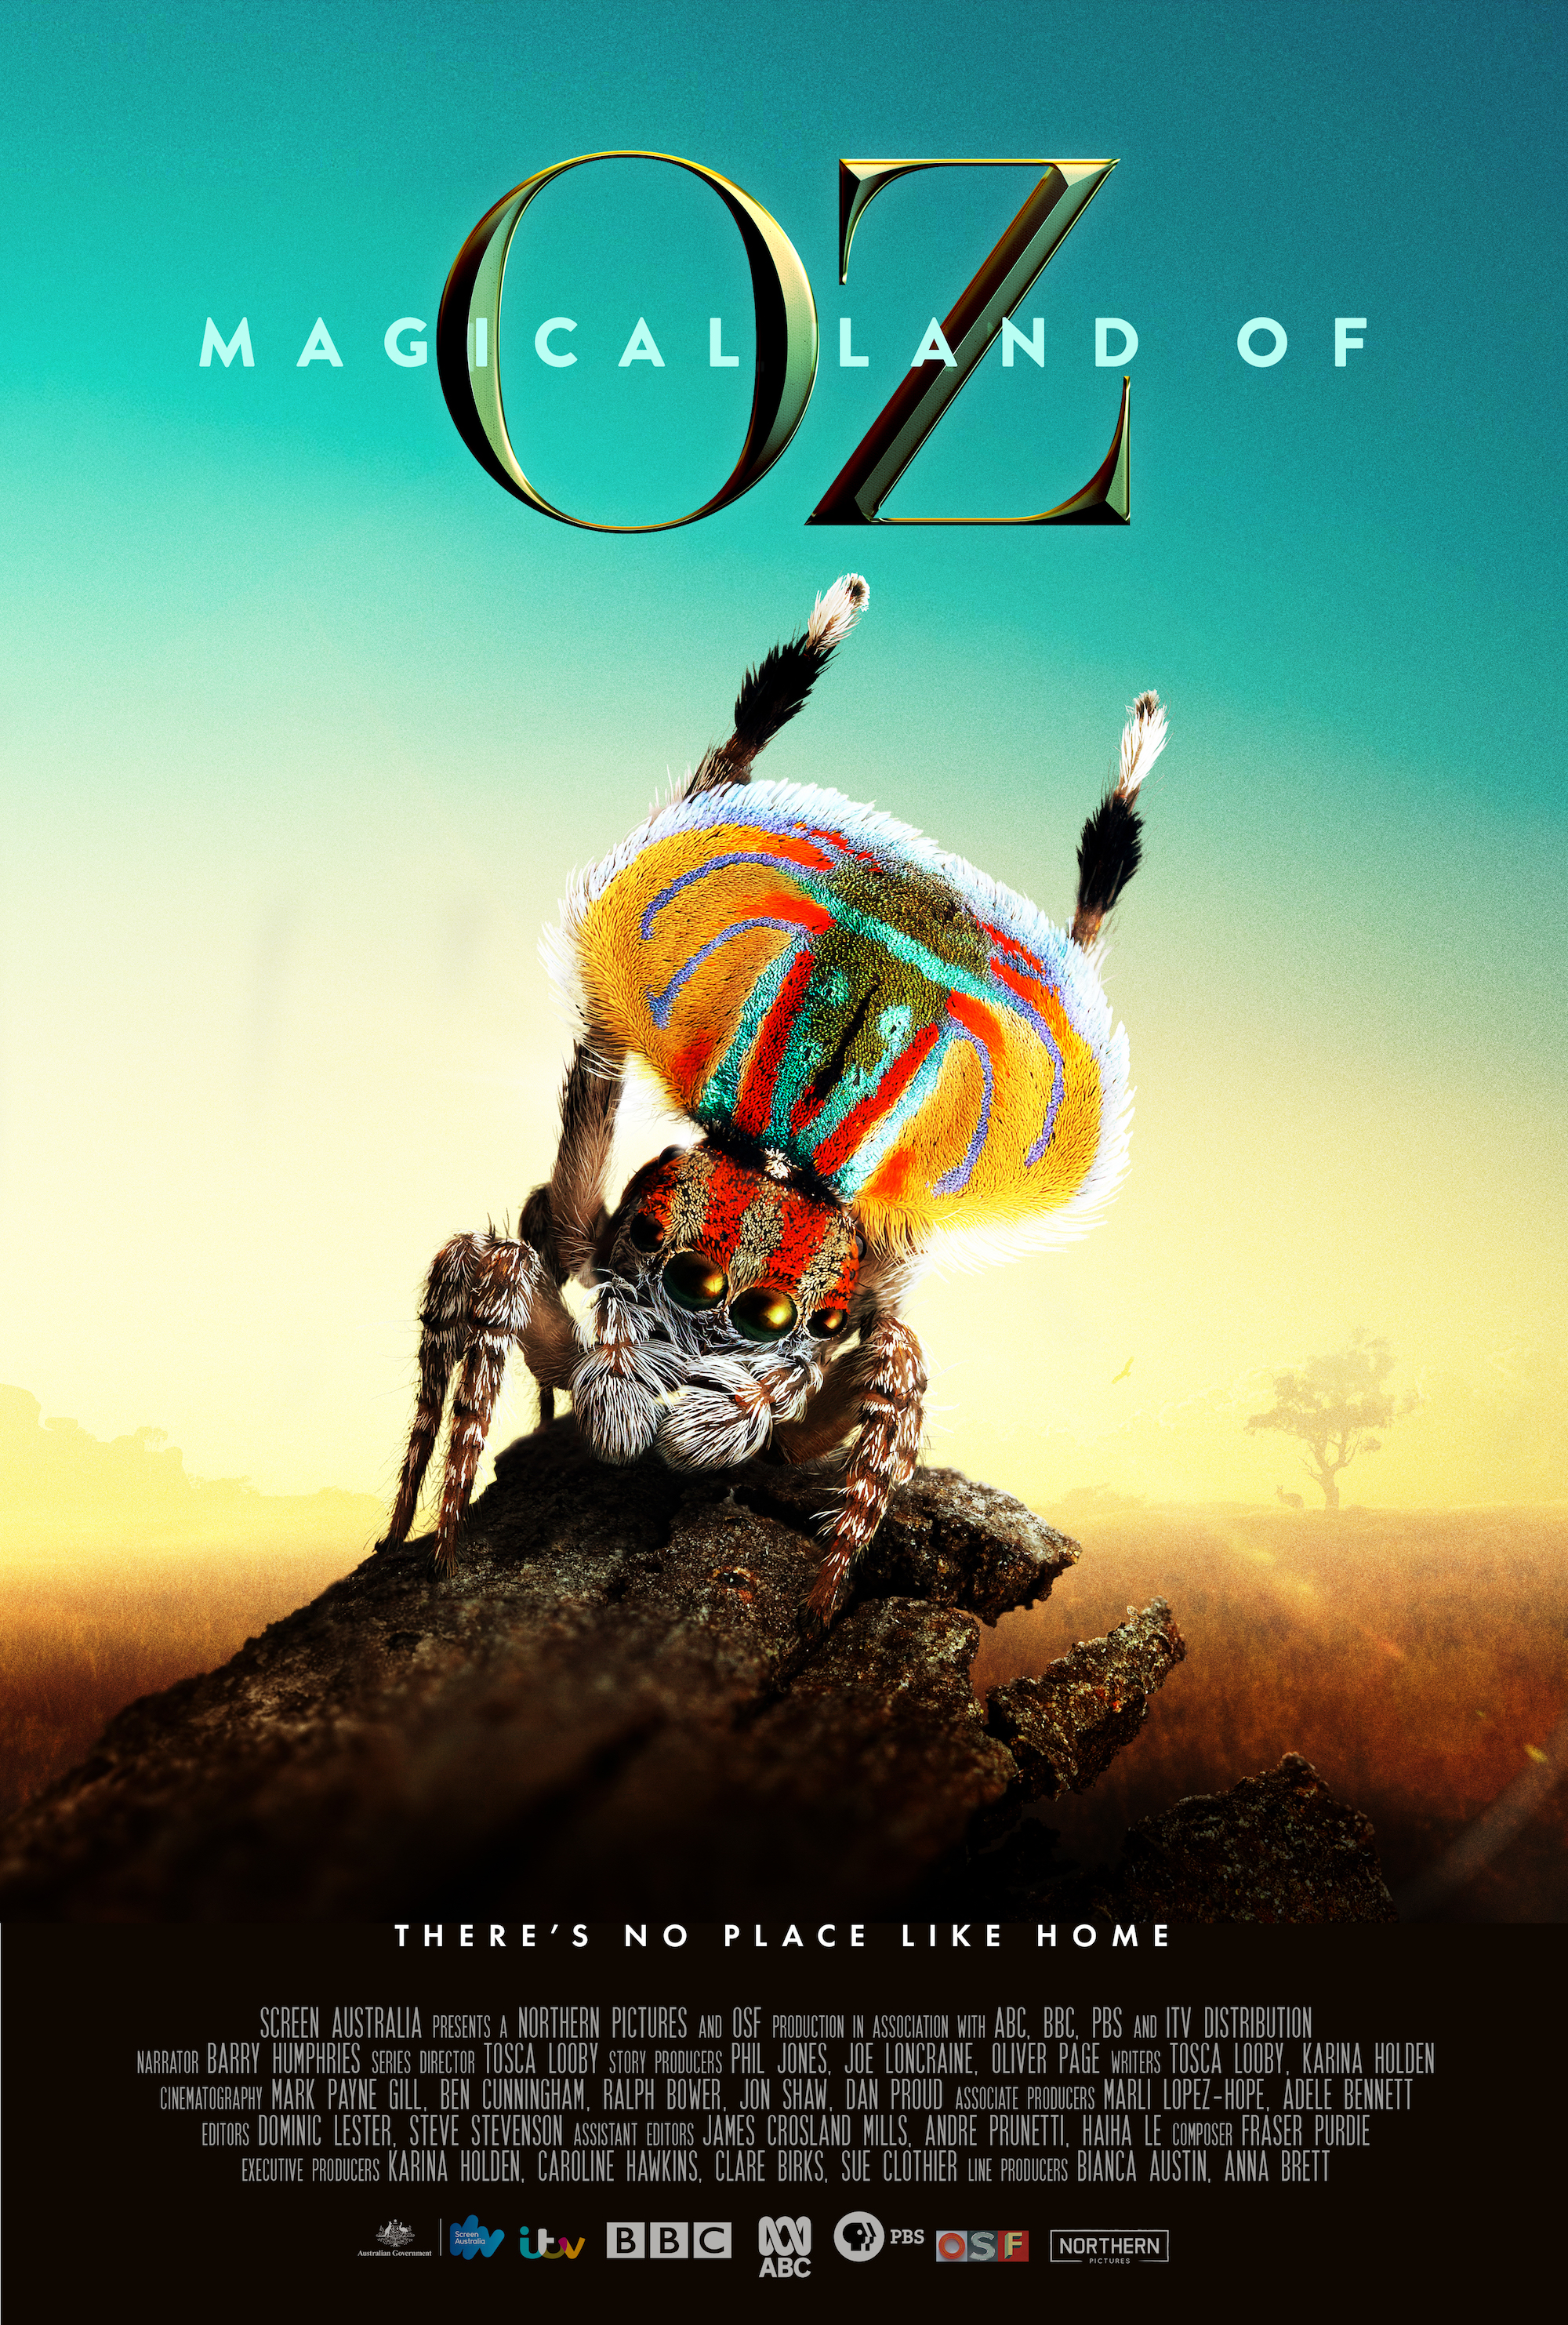 Magical Land of Oz Poster (FINAL) (email).jpg